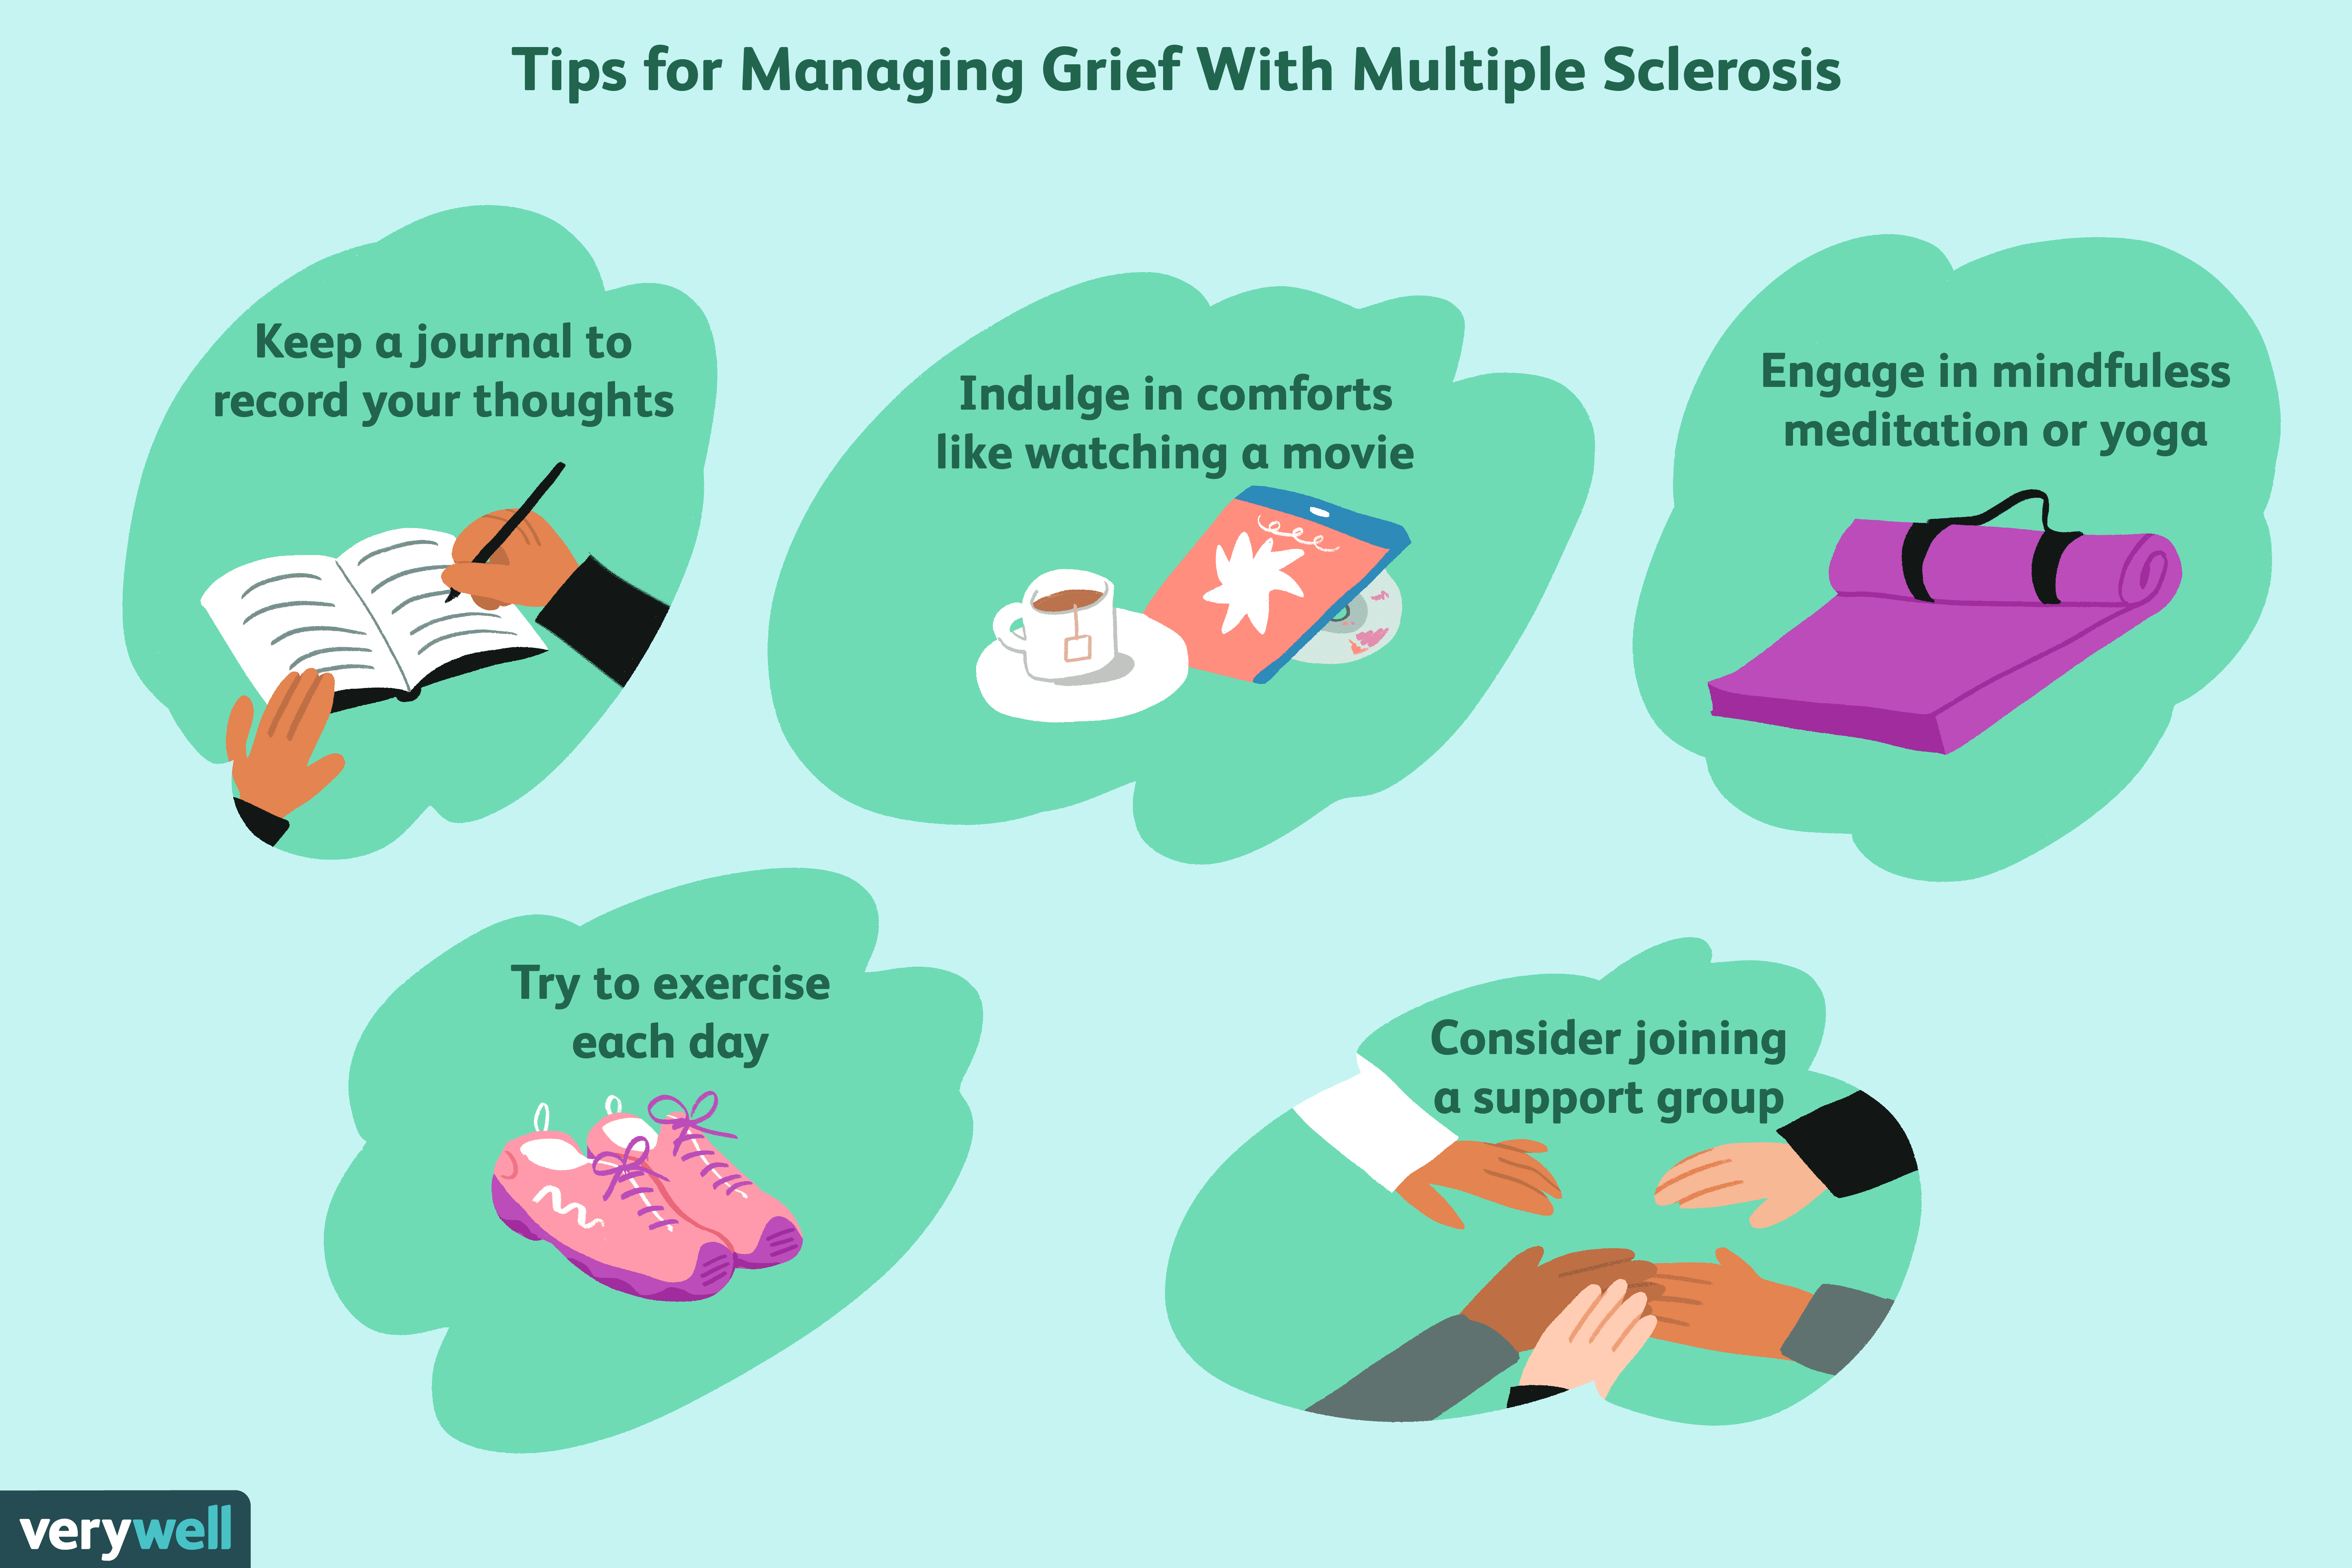 Tips for coping with grief if you have multiple sclerosis